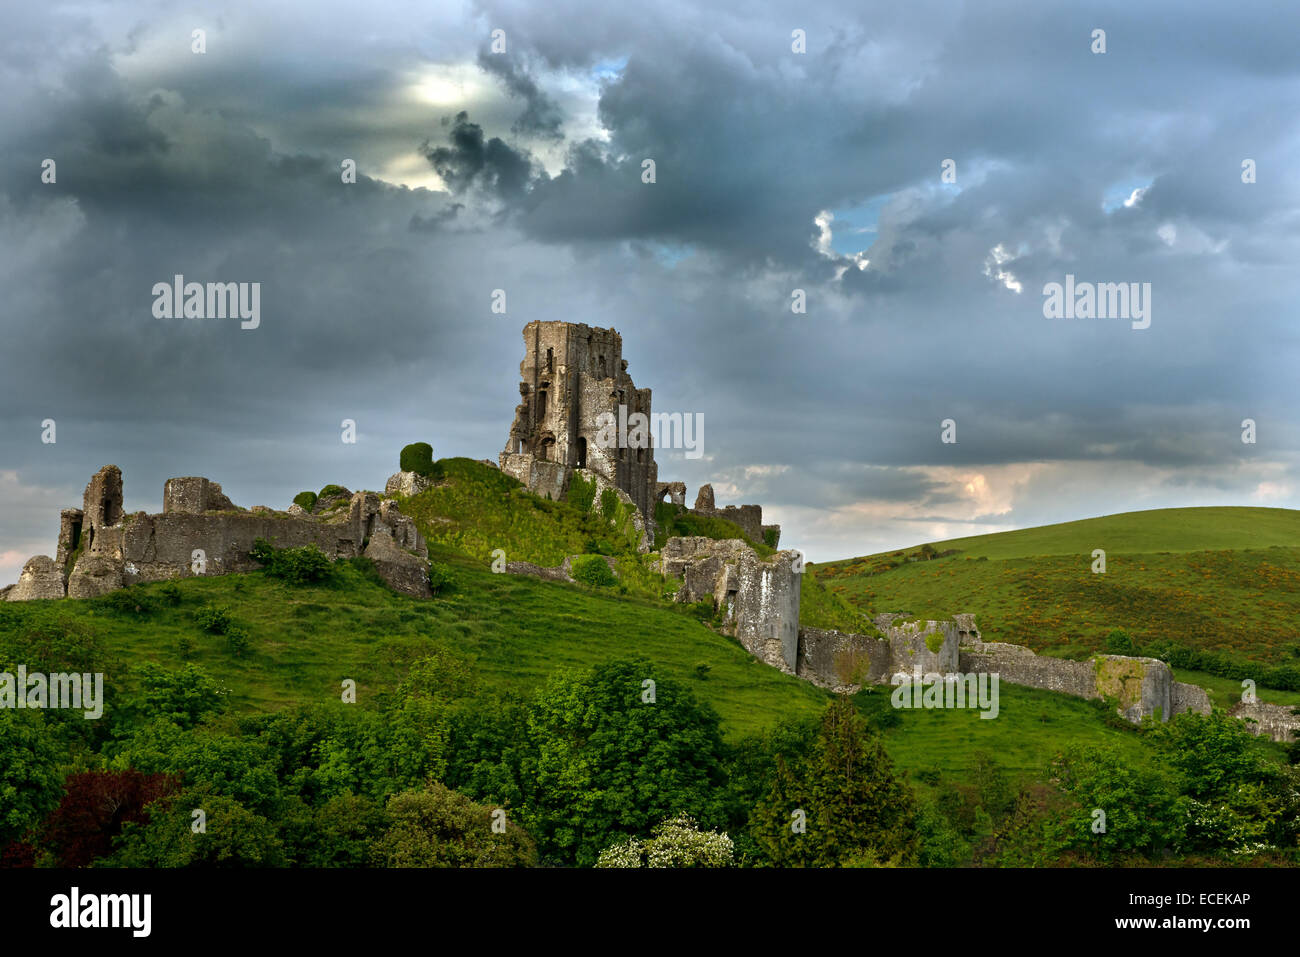 The Ruins of Corfe Castle, (National Trust), Isle of Purbeck, Dorset, England, Uk. - Stock Image